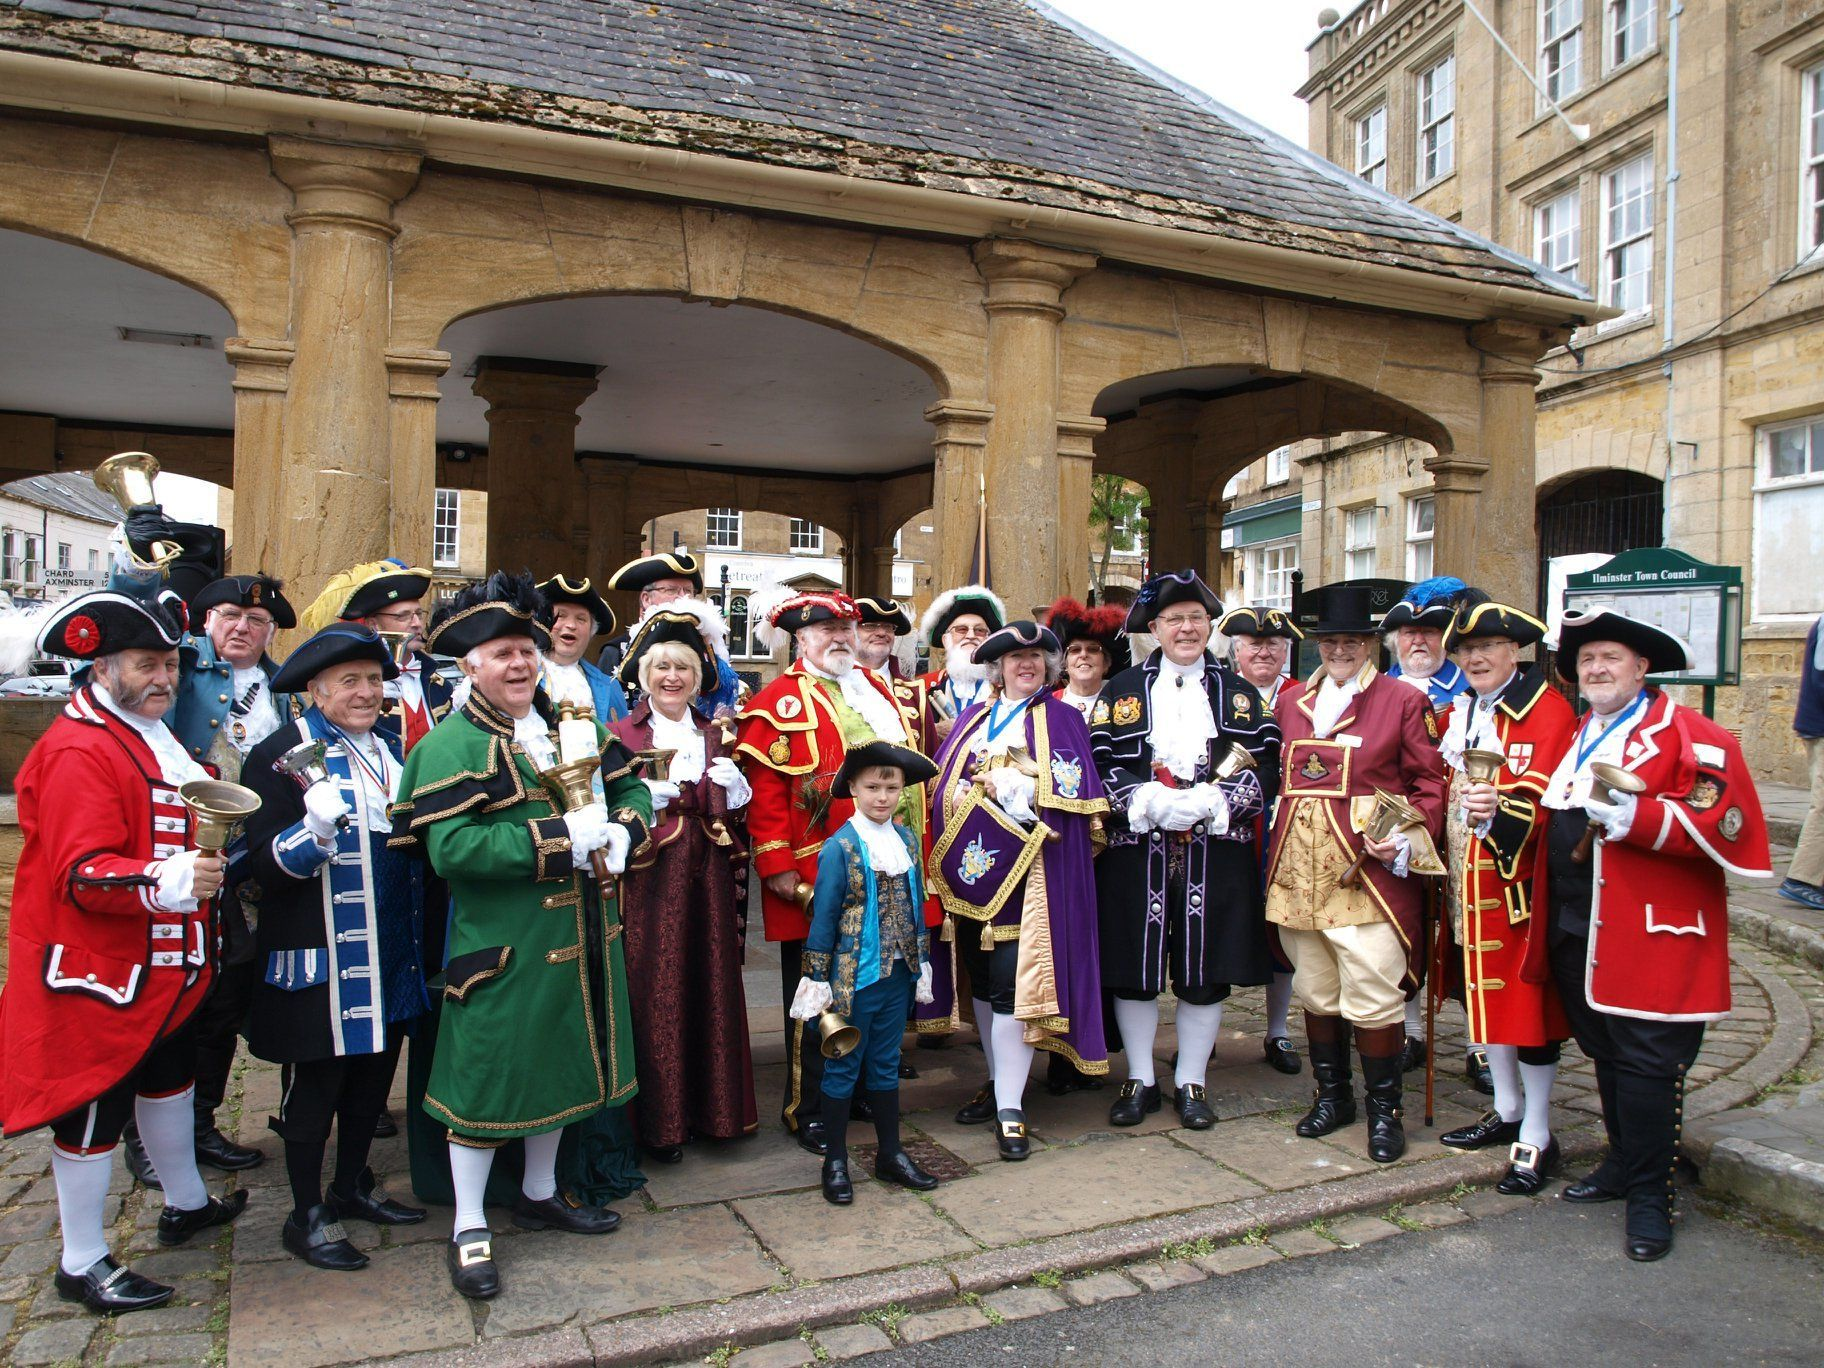 CIN pg14 Crier needs sponsors Ilminster crier event May 2018